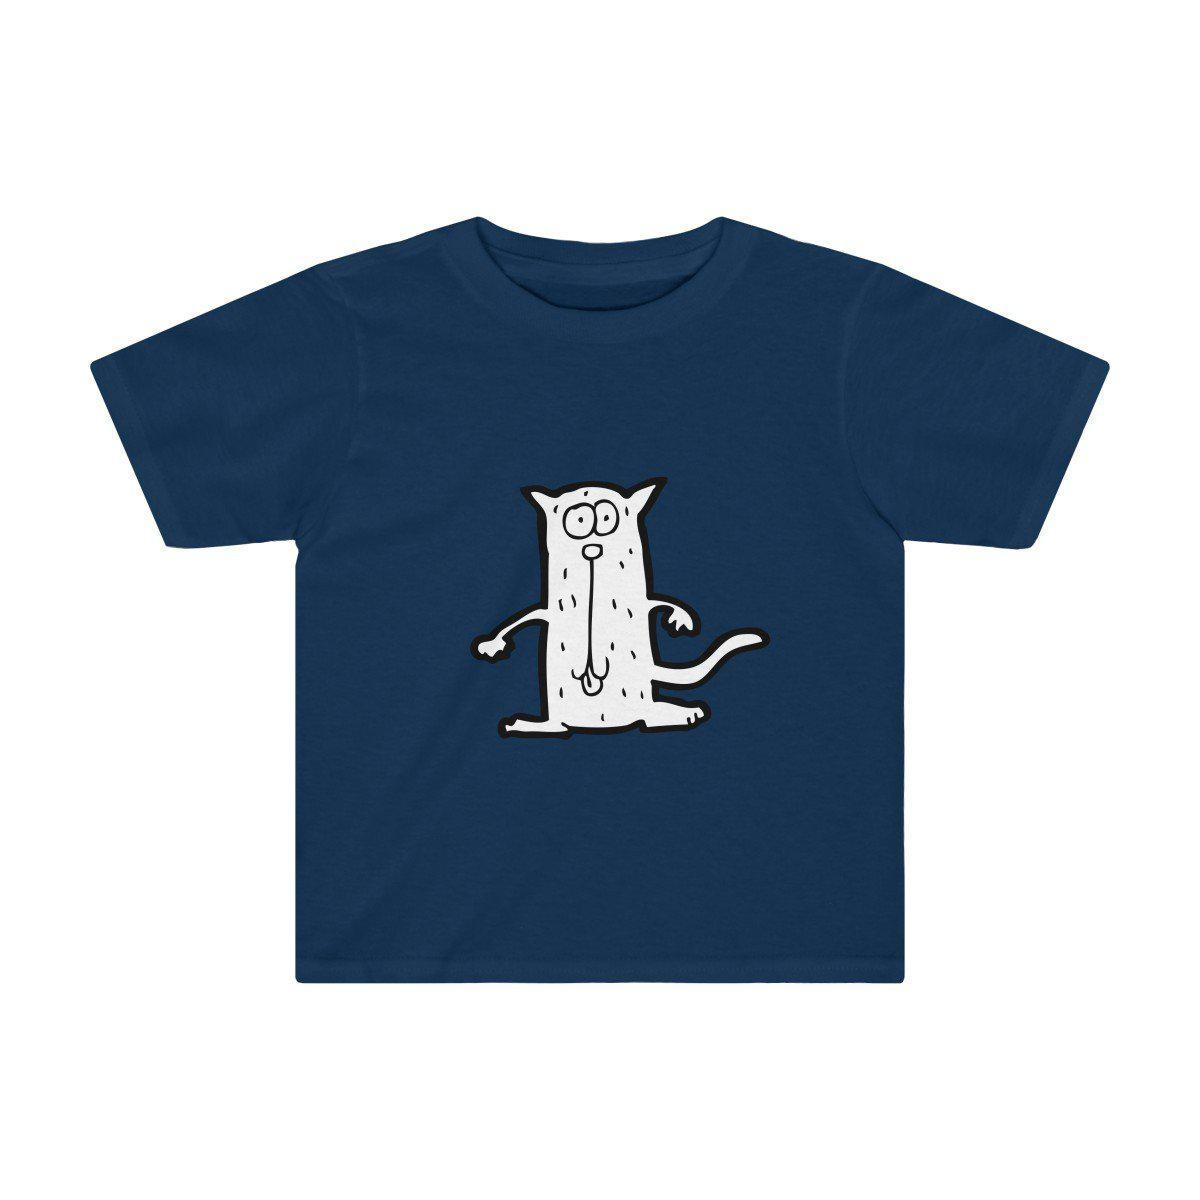 "Kids clothes ""Cool Cat"" Family Matching Tees - Mix and Match - ZERO TO THREE CLUB Kids clothes"